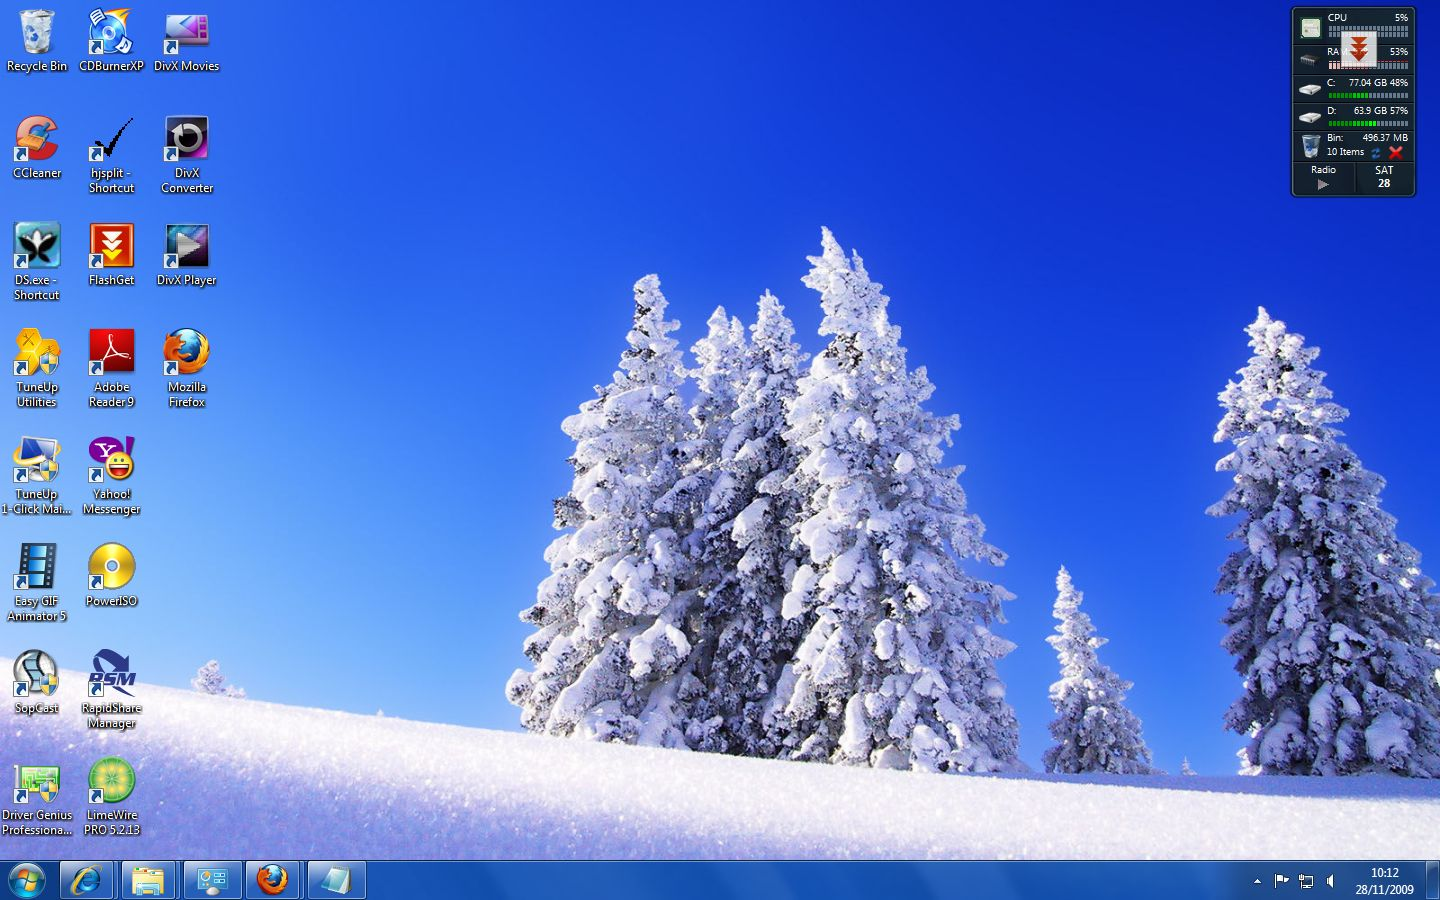 Windows 7 Animated Wallpapers Space furthermore Free 3d Wallpaper additionally Harley Screensavers And Wallpaper besides Clip 18948281 Stock Footage Wel e To Europe Travel On The World Concept Traveling Background Video Animation Tourism And likewise Free Large Screensavers Or Wallpaper. on animated screensavers theme